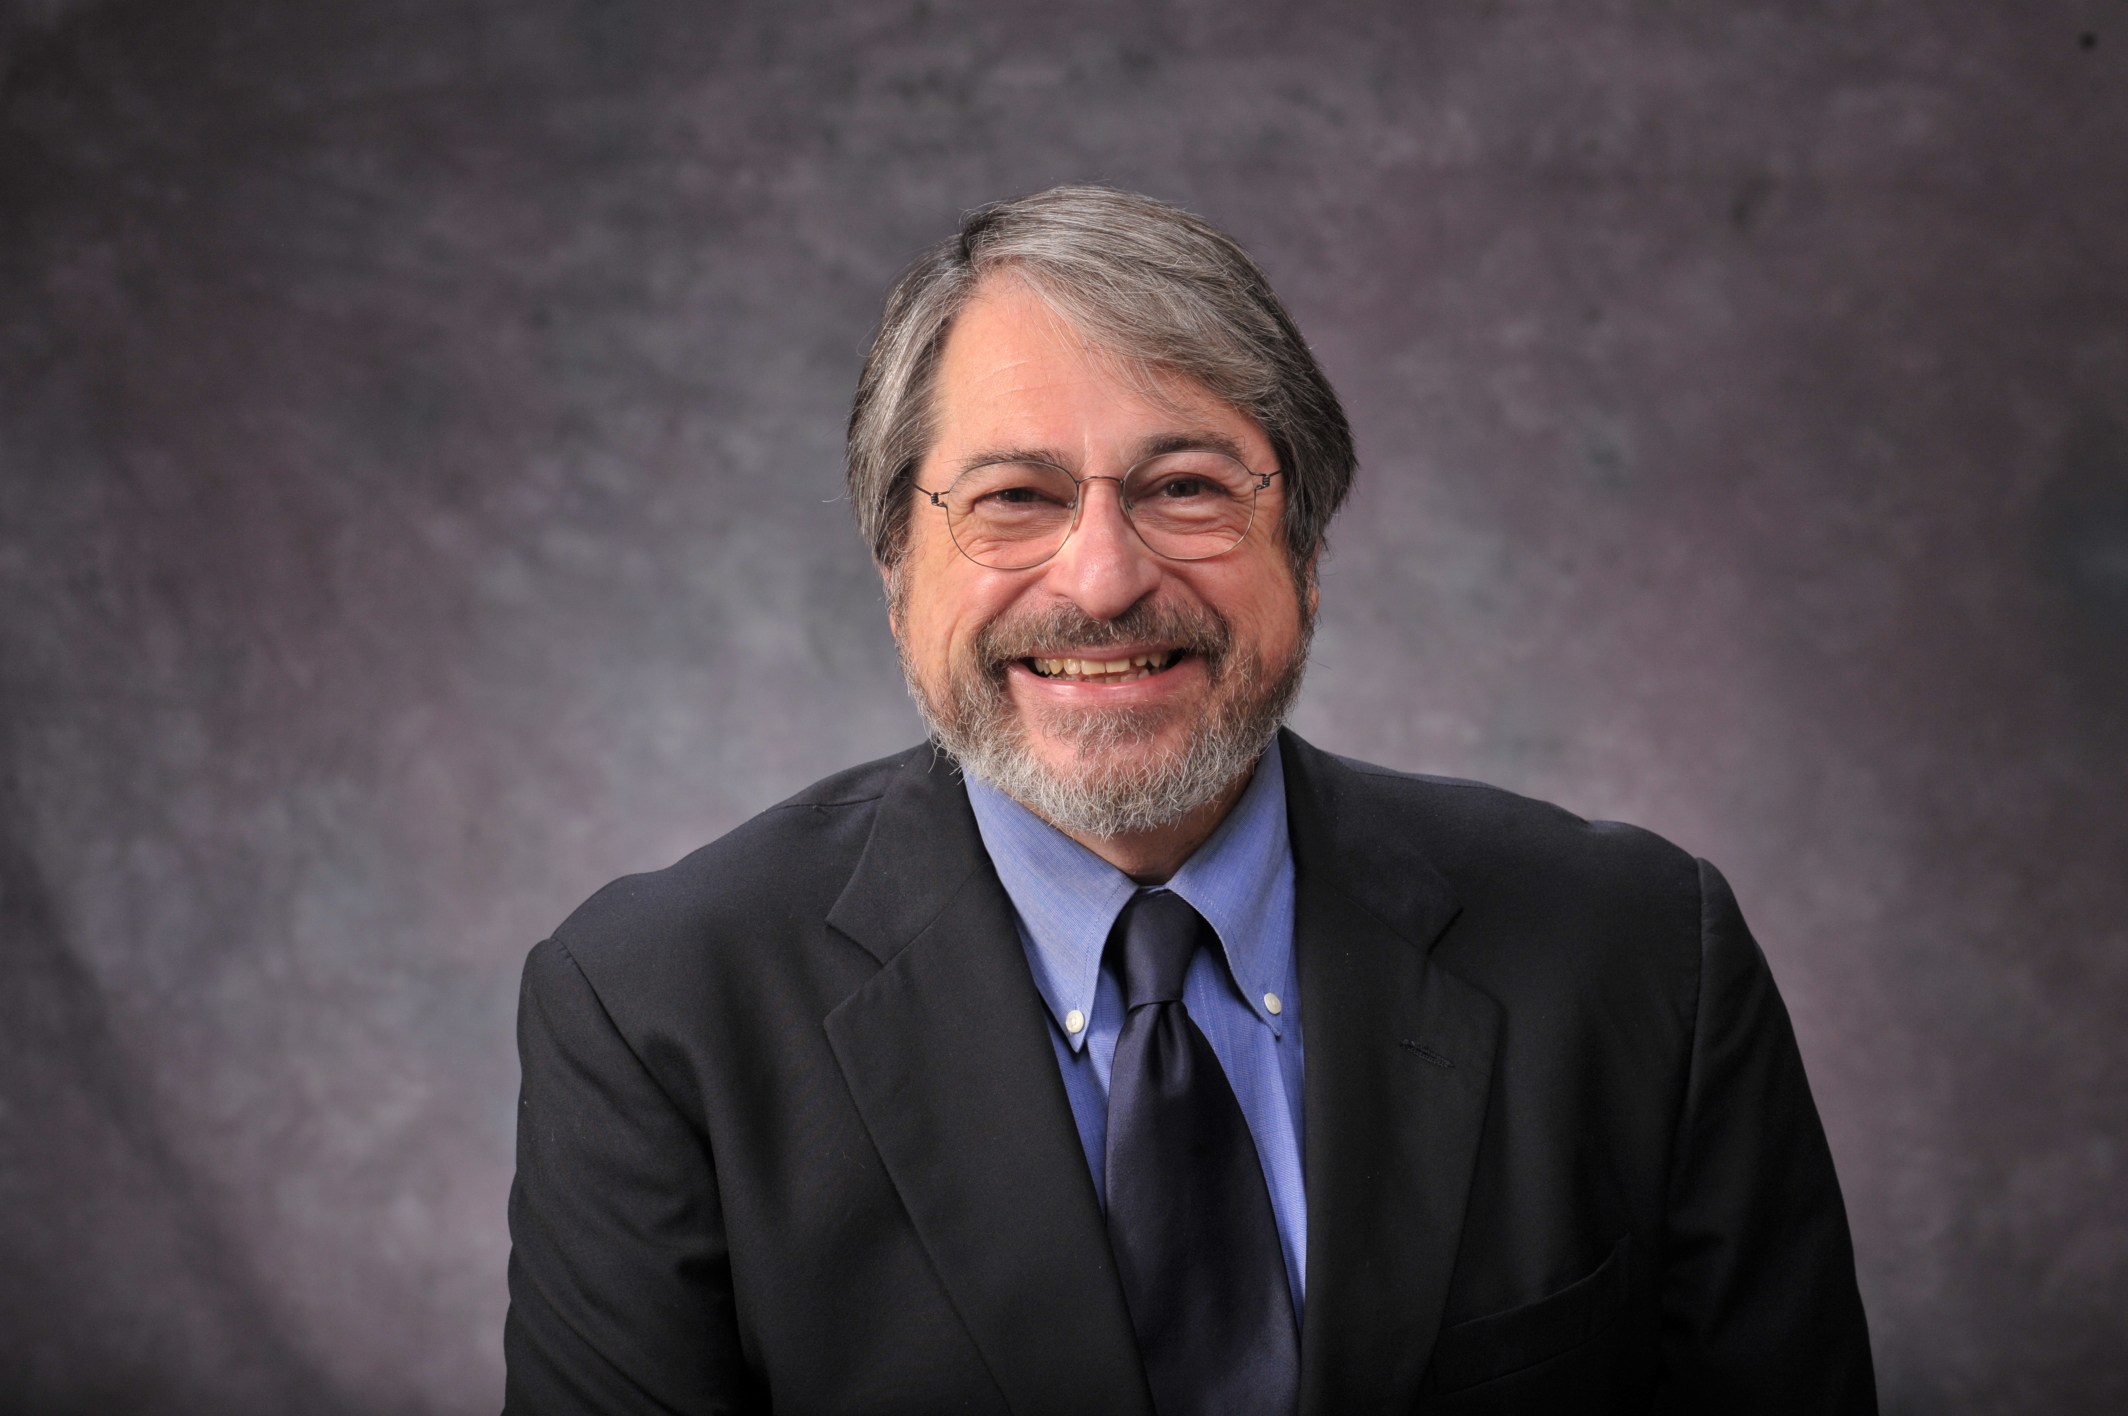 Dr. Alan Kraut to Discuss Immigrant Healthcare on April 14, 11 a.m.